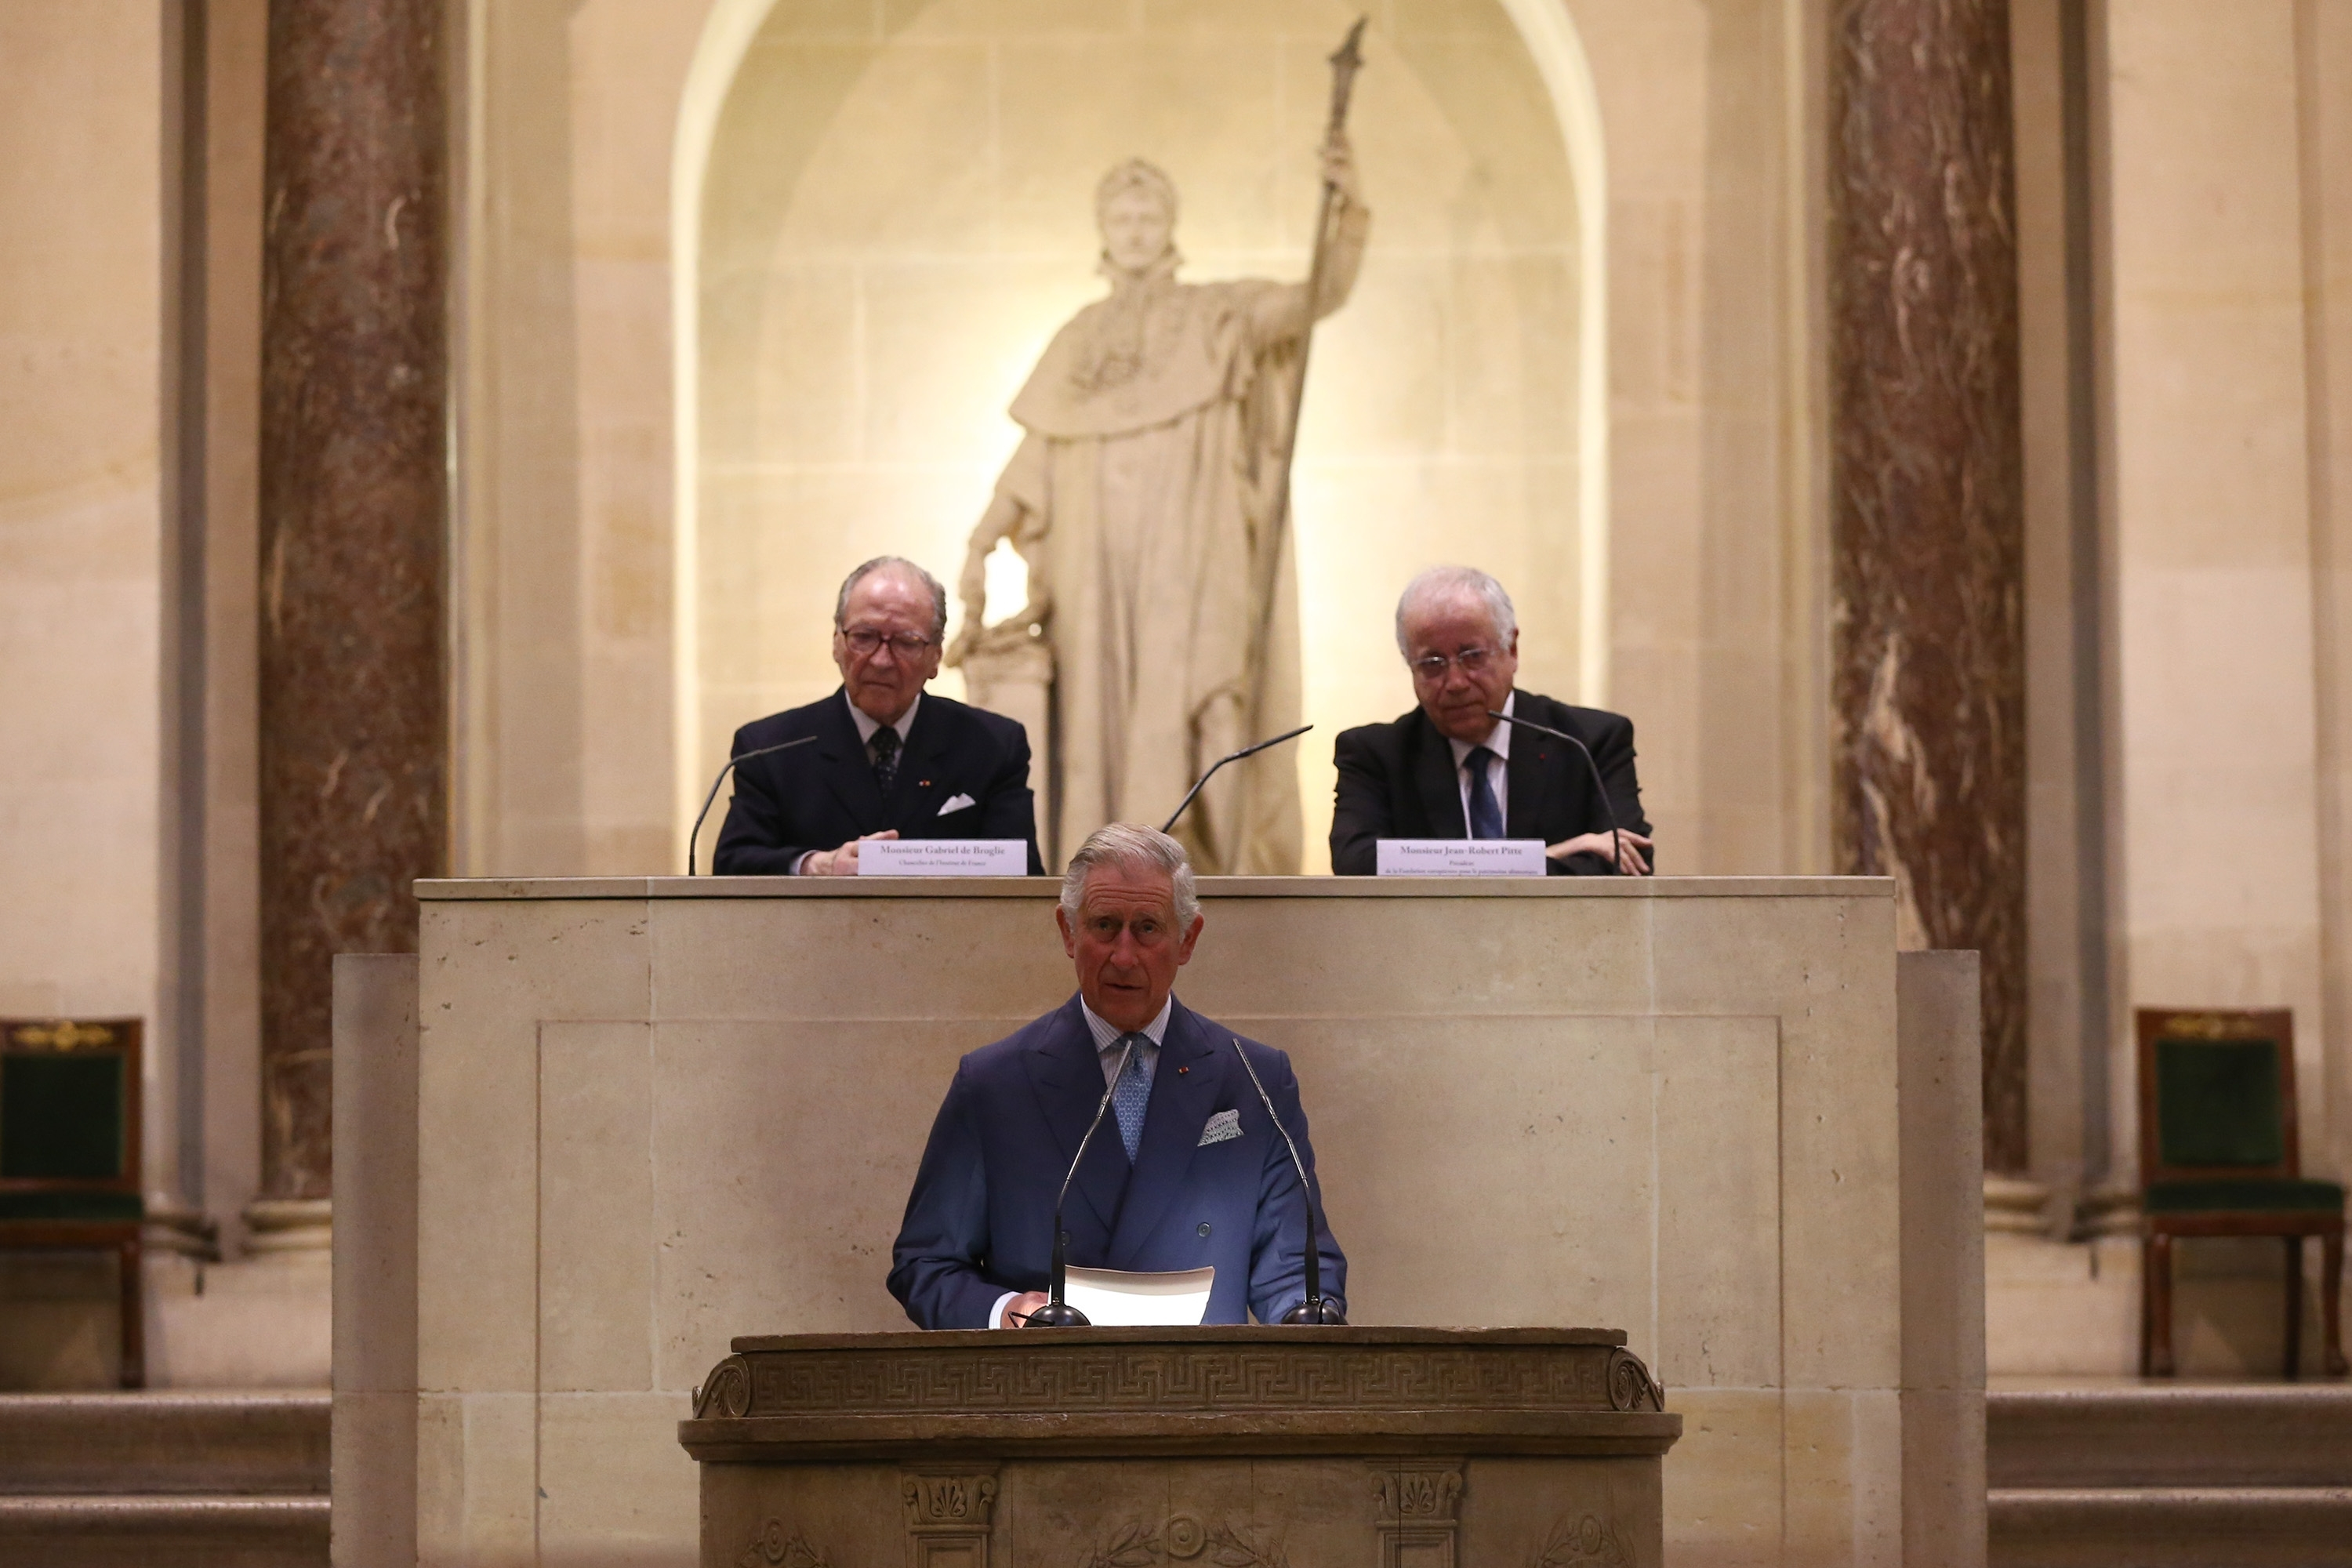 Prince Charles, Prince of Wales speaks during a visit to the Institut De France